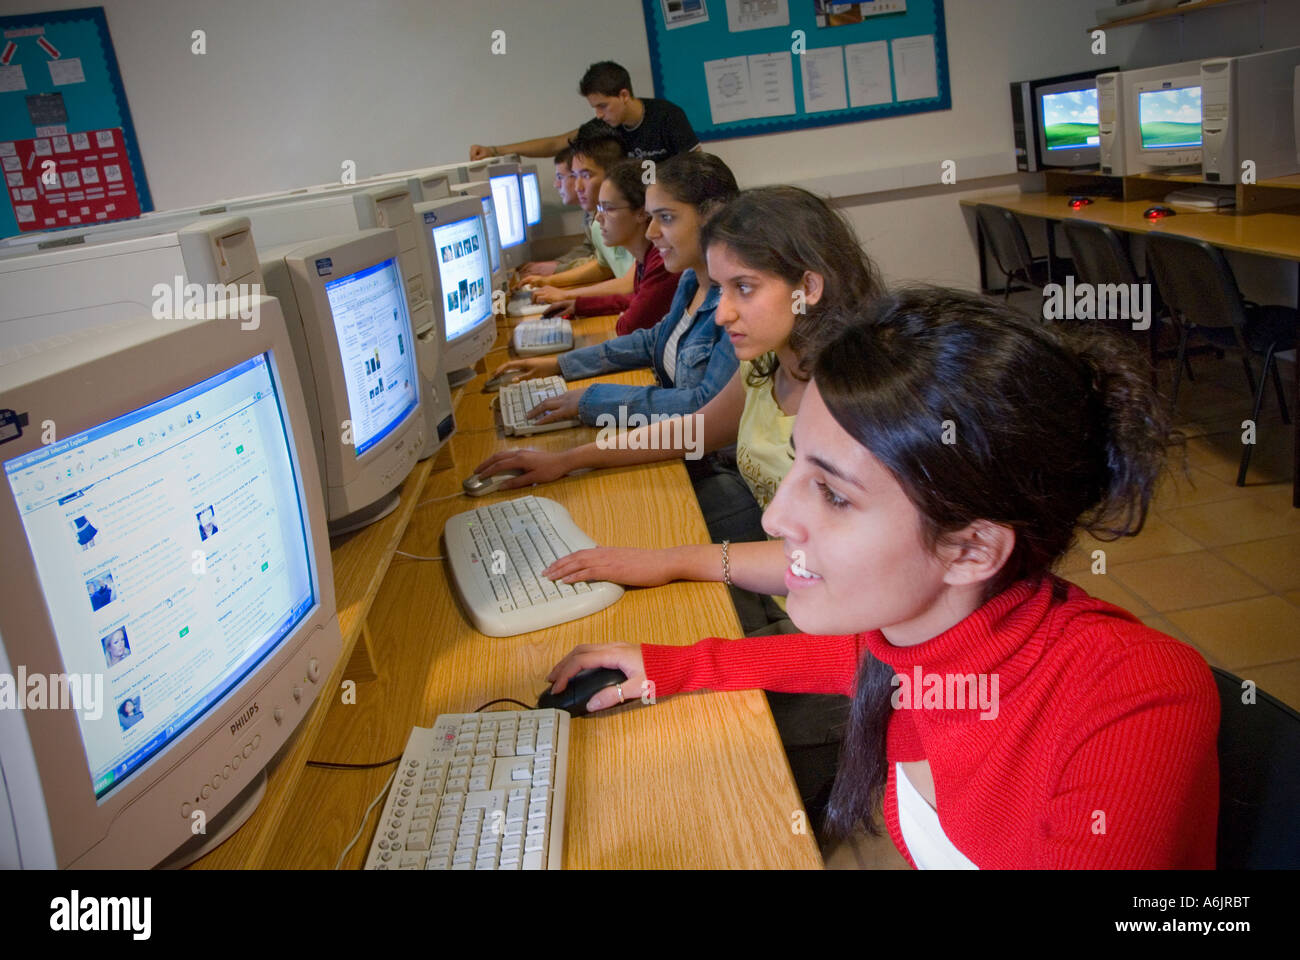 Multiracial senior teenage students studying at their work station screens in the school computer classroom - Stock Image